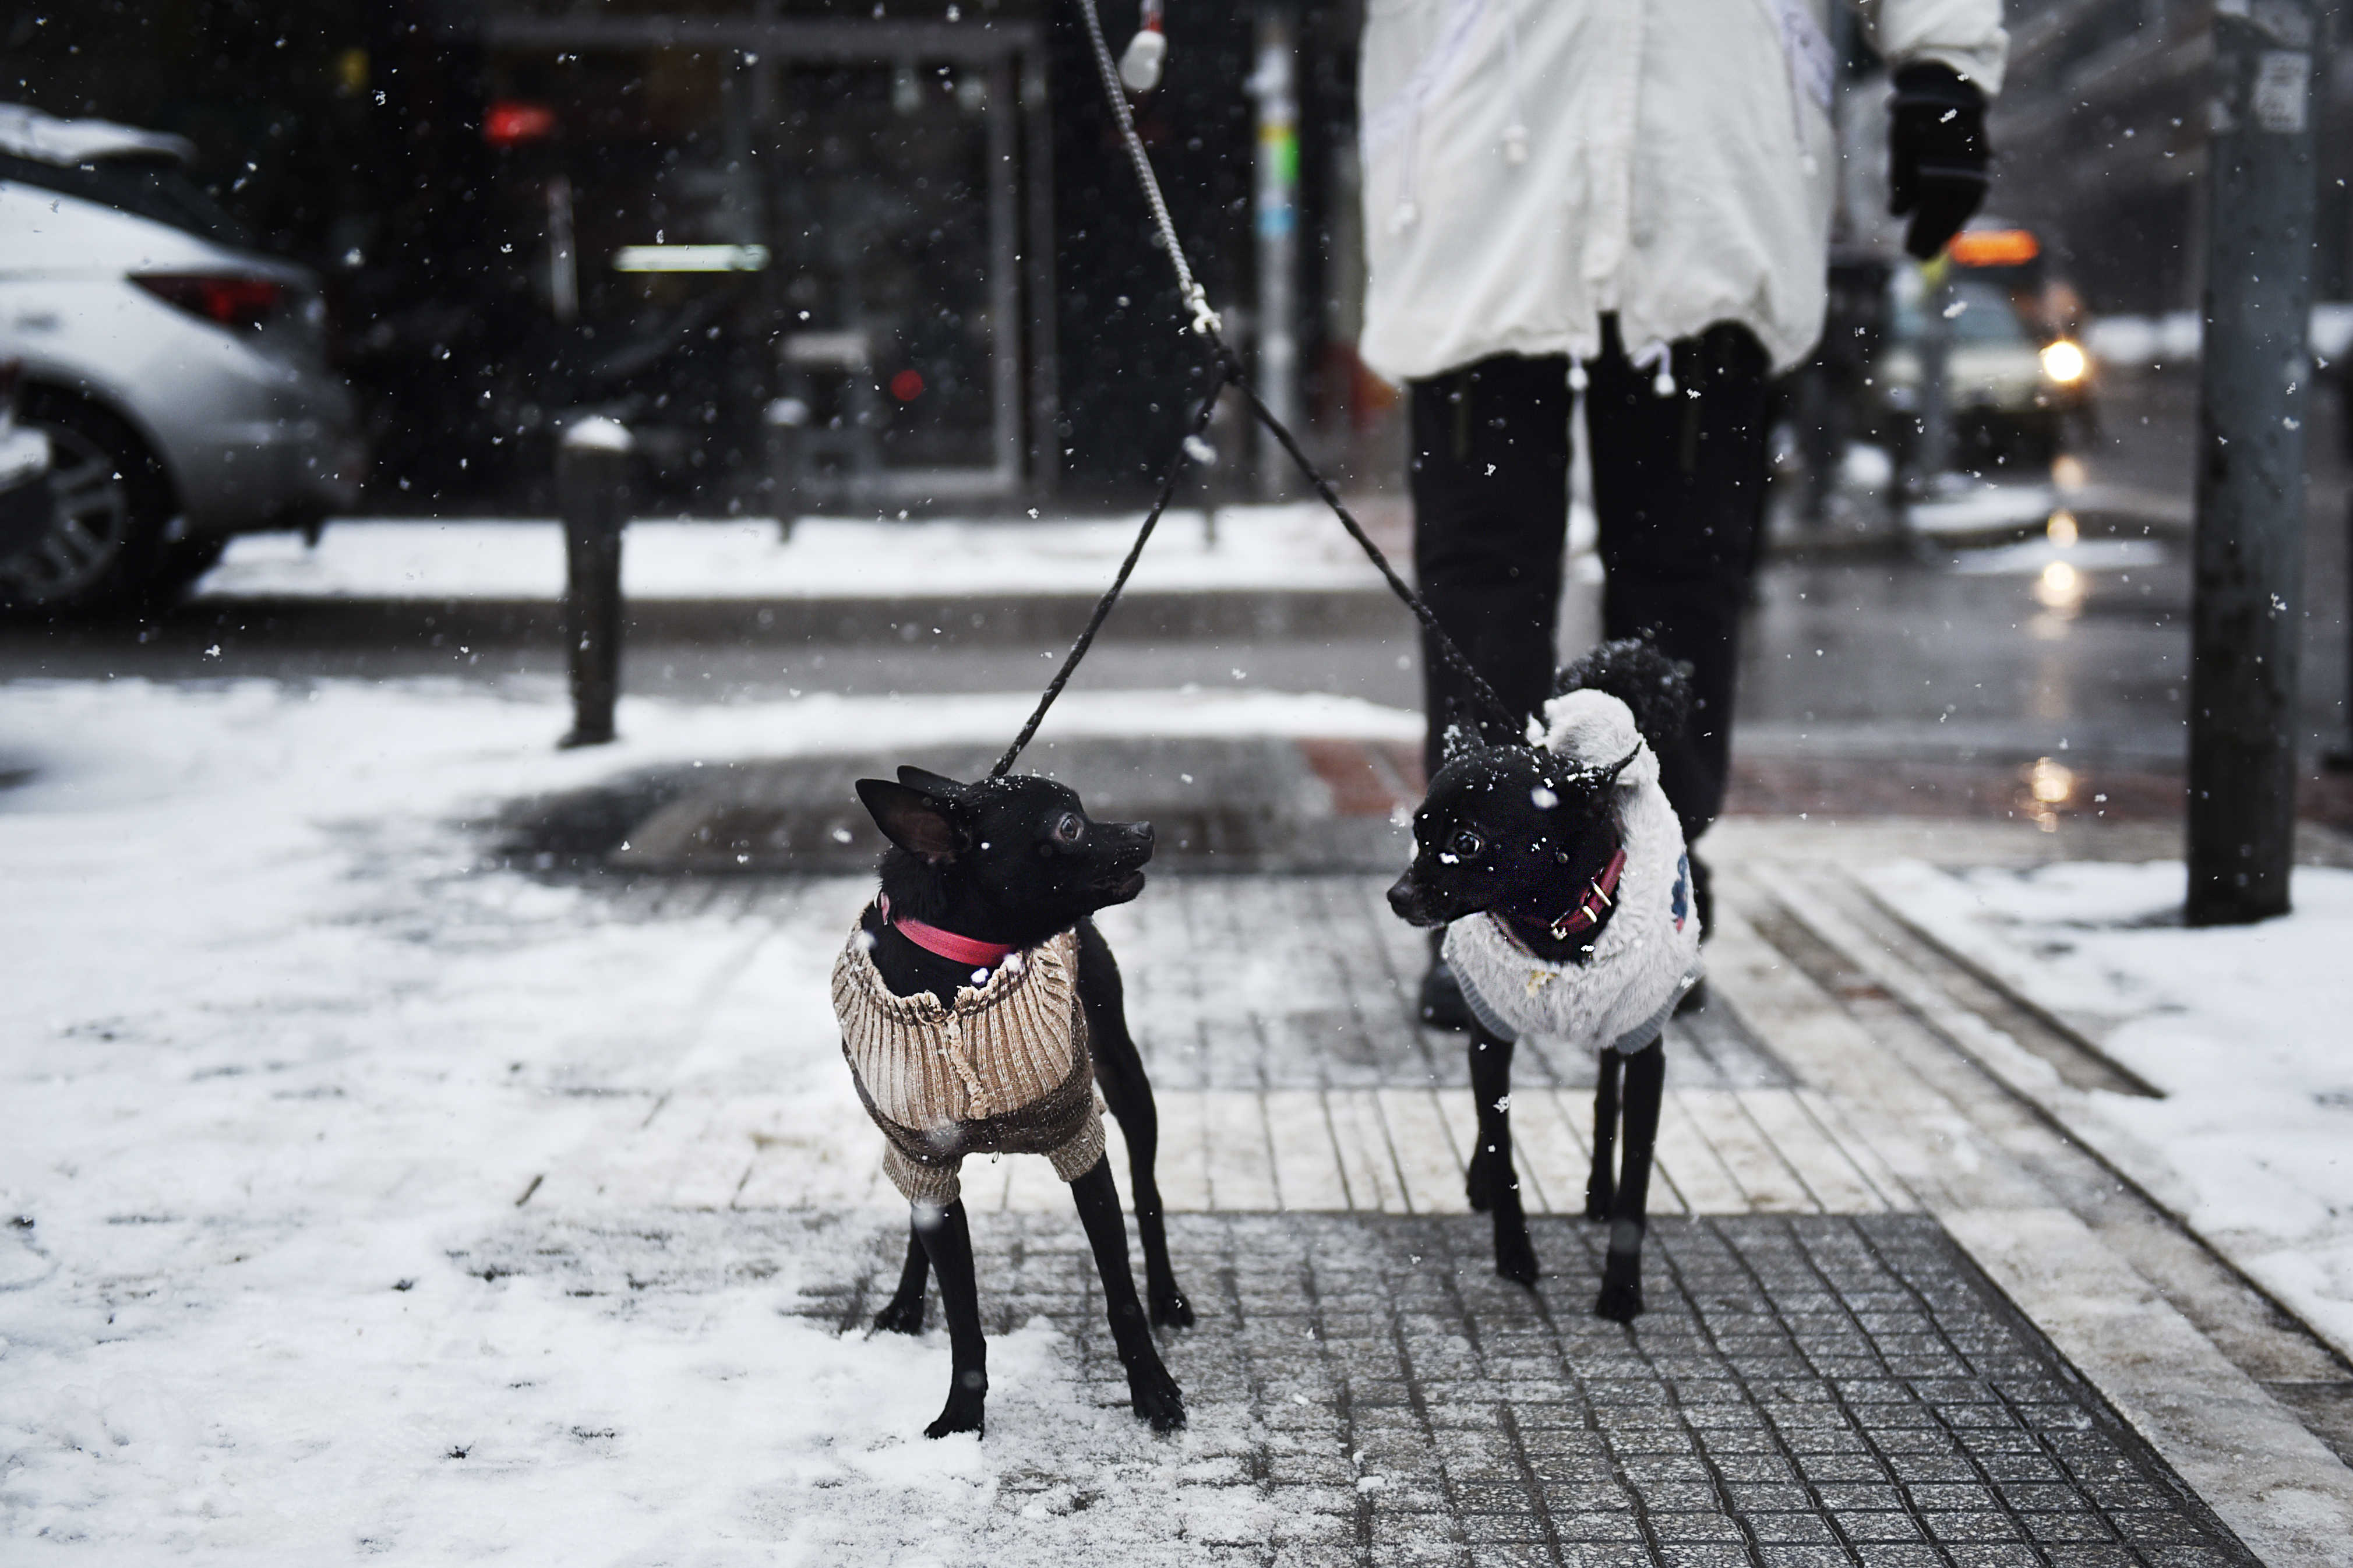 Top 5 Tips to Keep Your Dog Safe & Warm This Winter